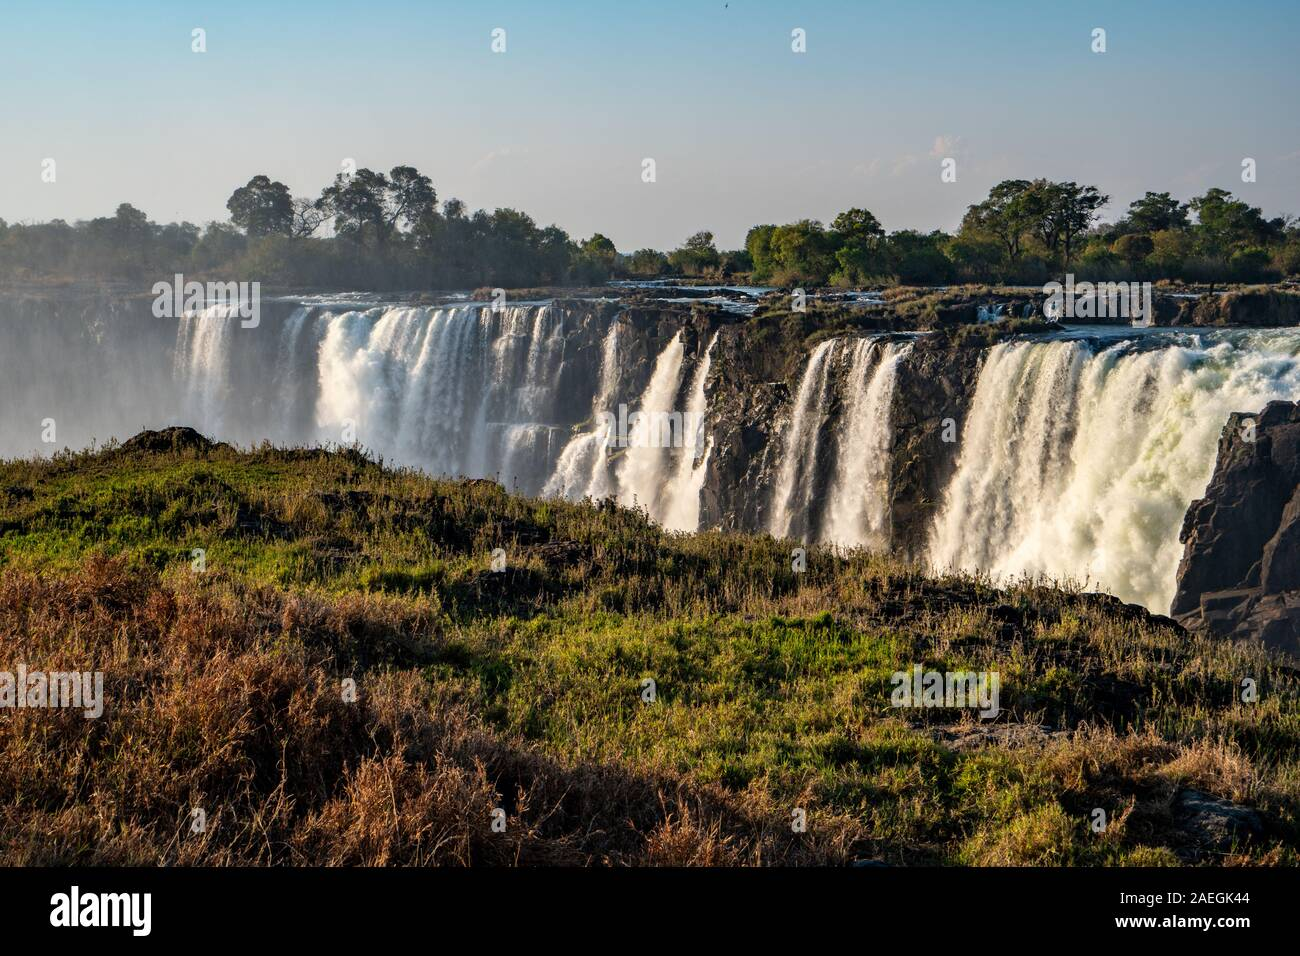 Victoria Falls, Named by David Livingstone in 1855 after Queen Victoria, The waterfall is formed by the Zambezi River falling into a 100 metre deep ch Stock Photo